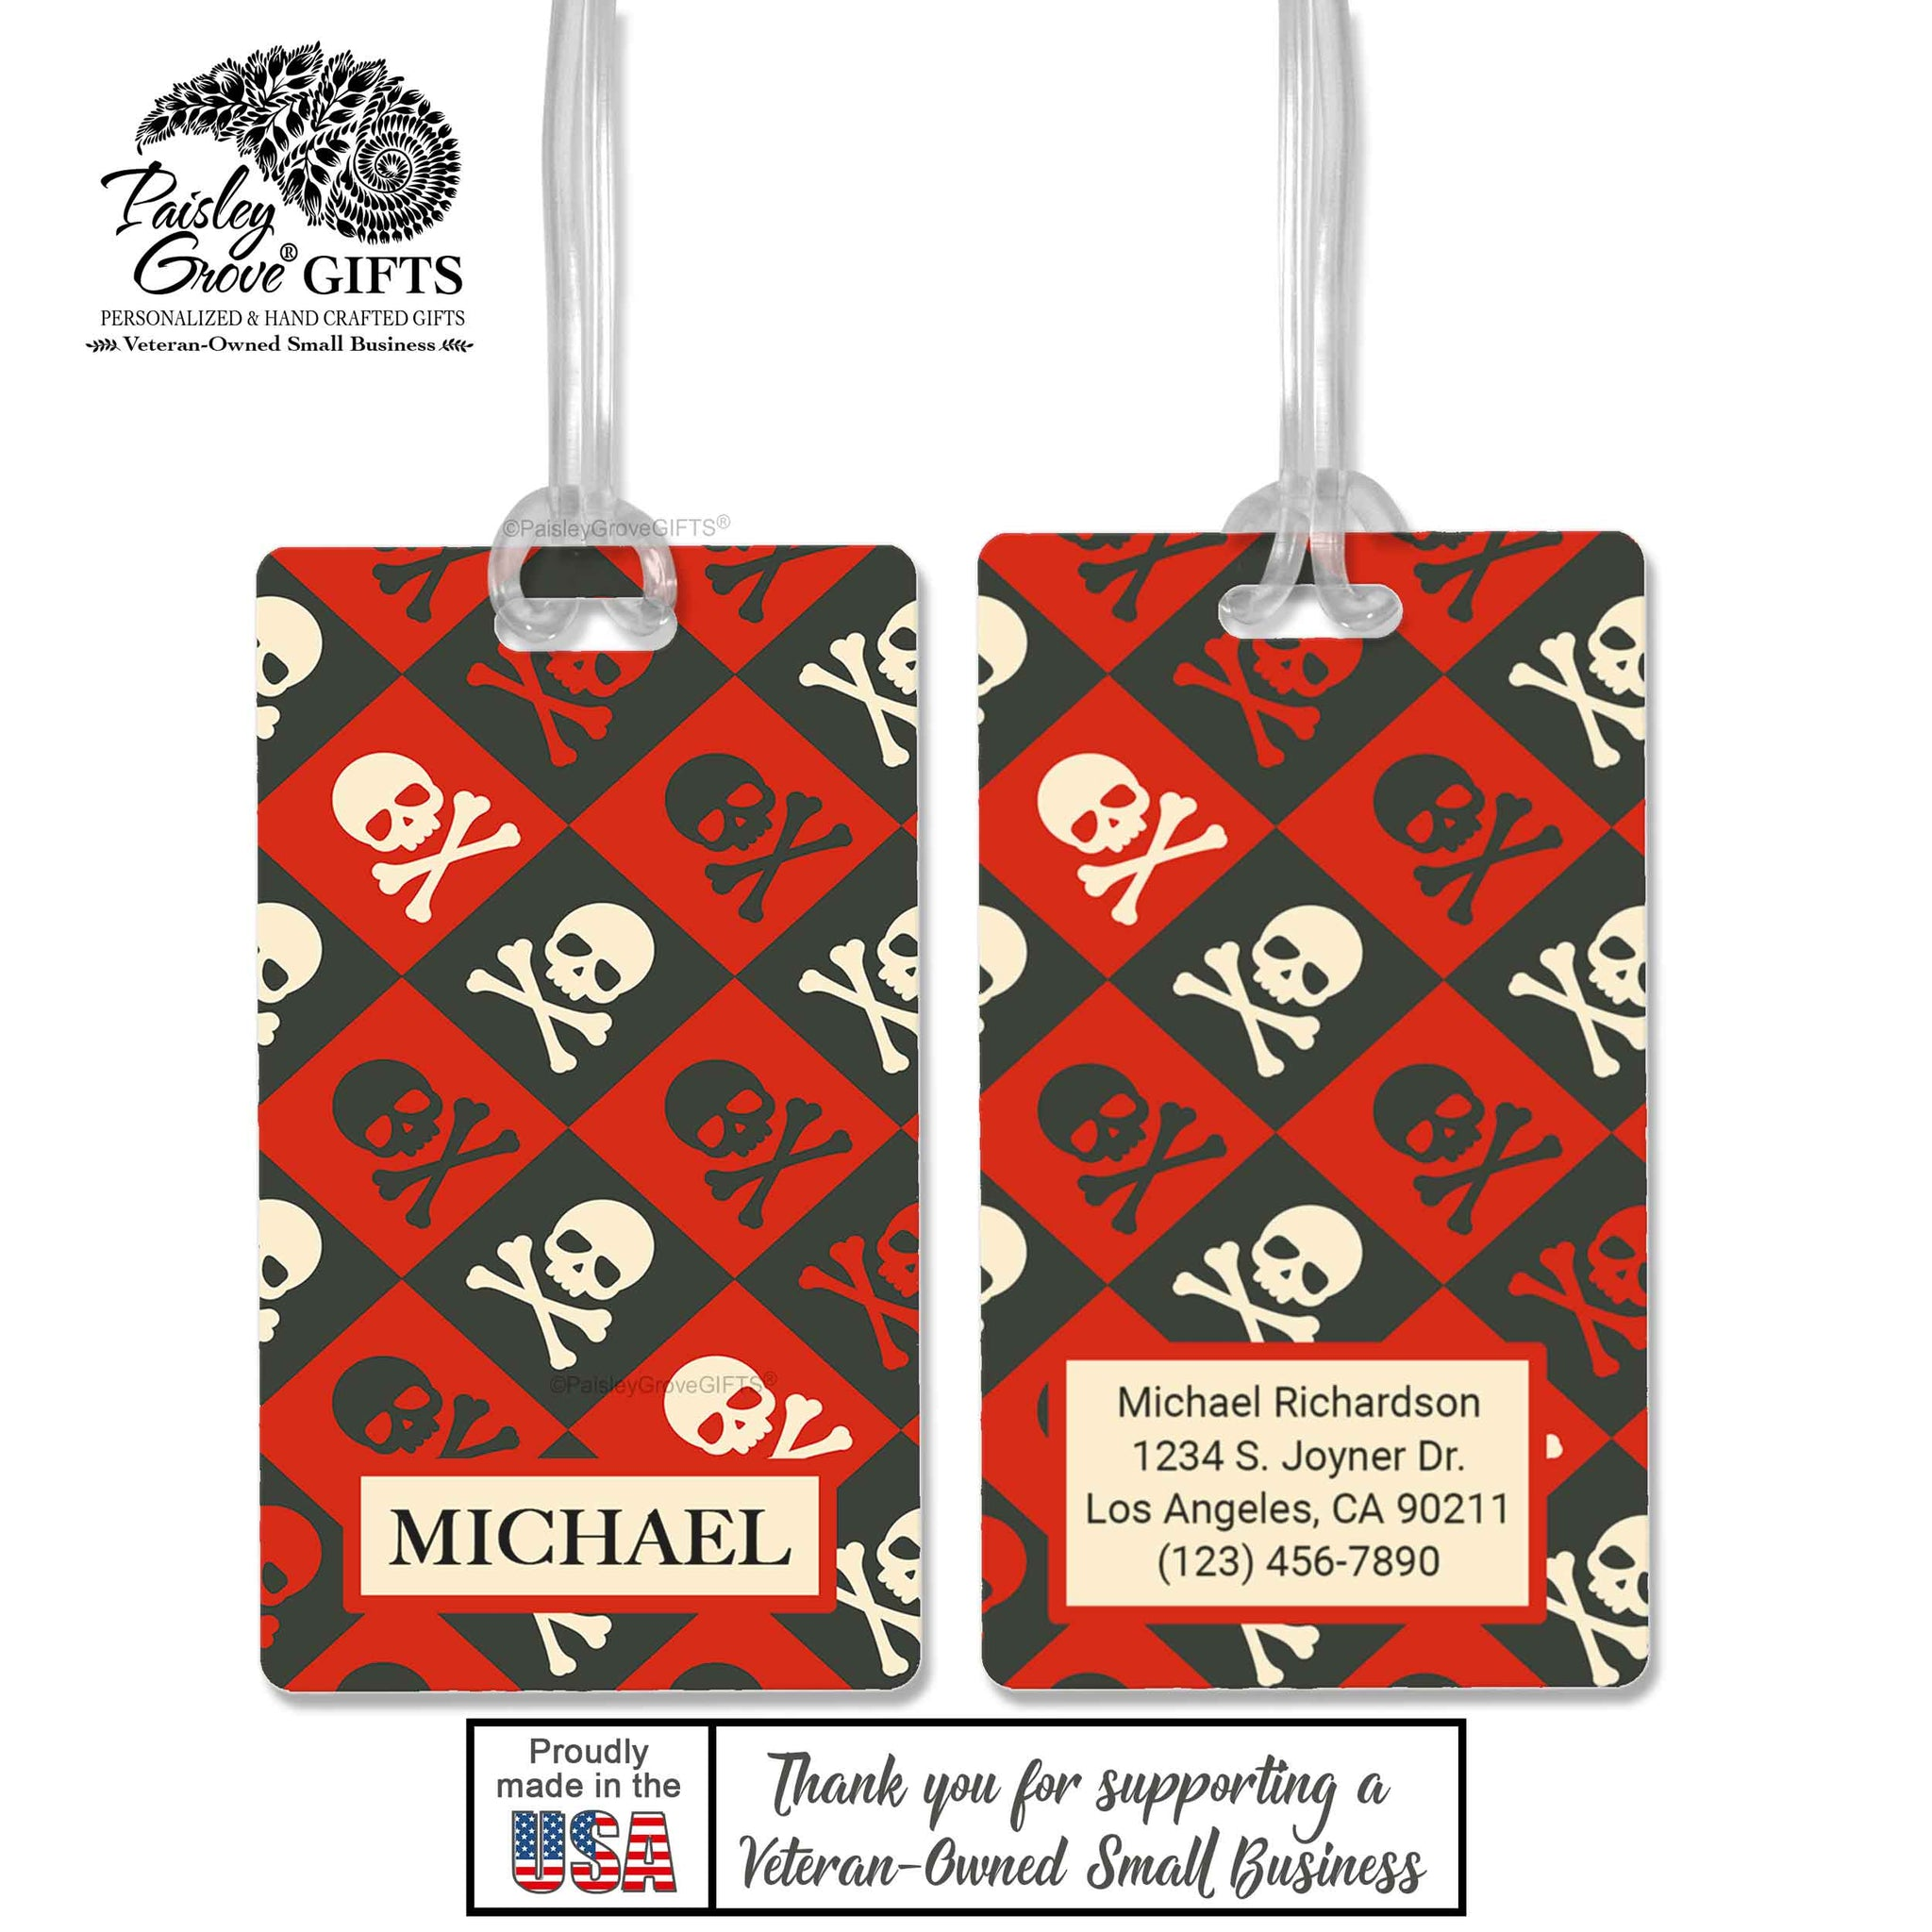 CopyrightPaisleyGroveGIFTS S152b1 Luggage Tags Customized in the USA Pirate Skull and Crossbones